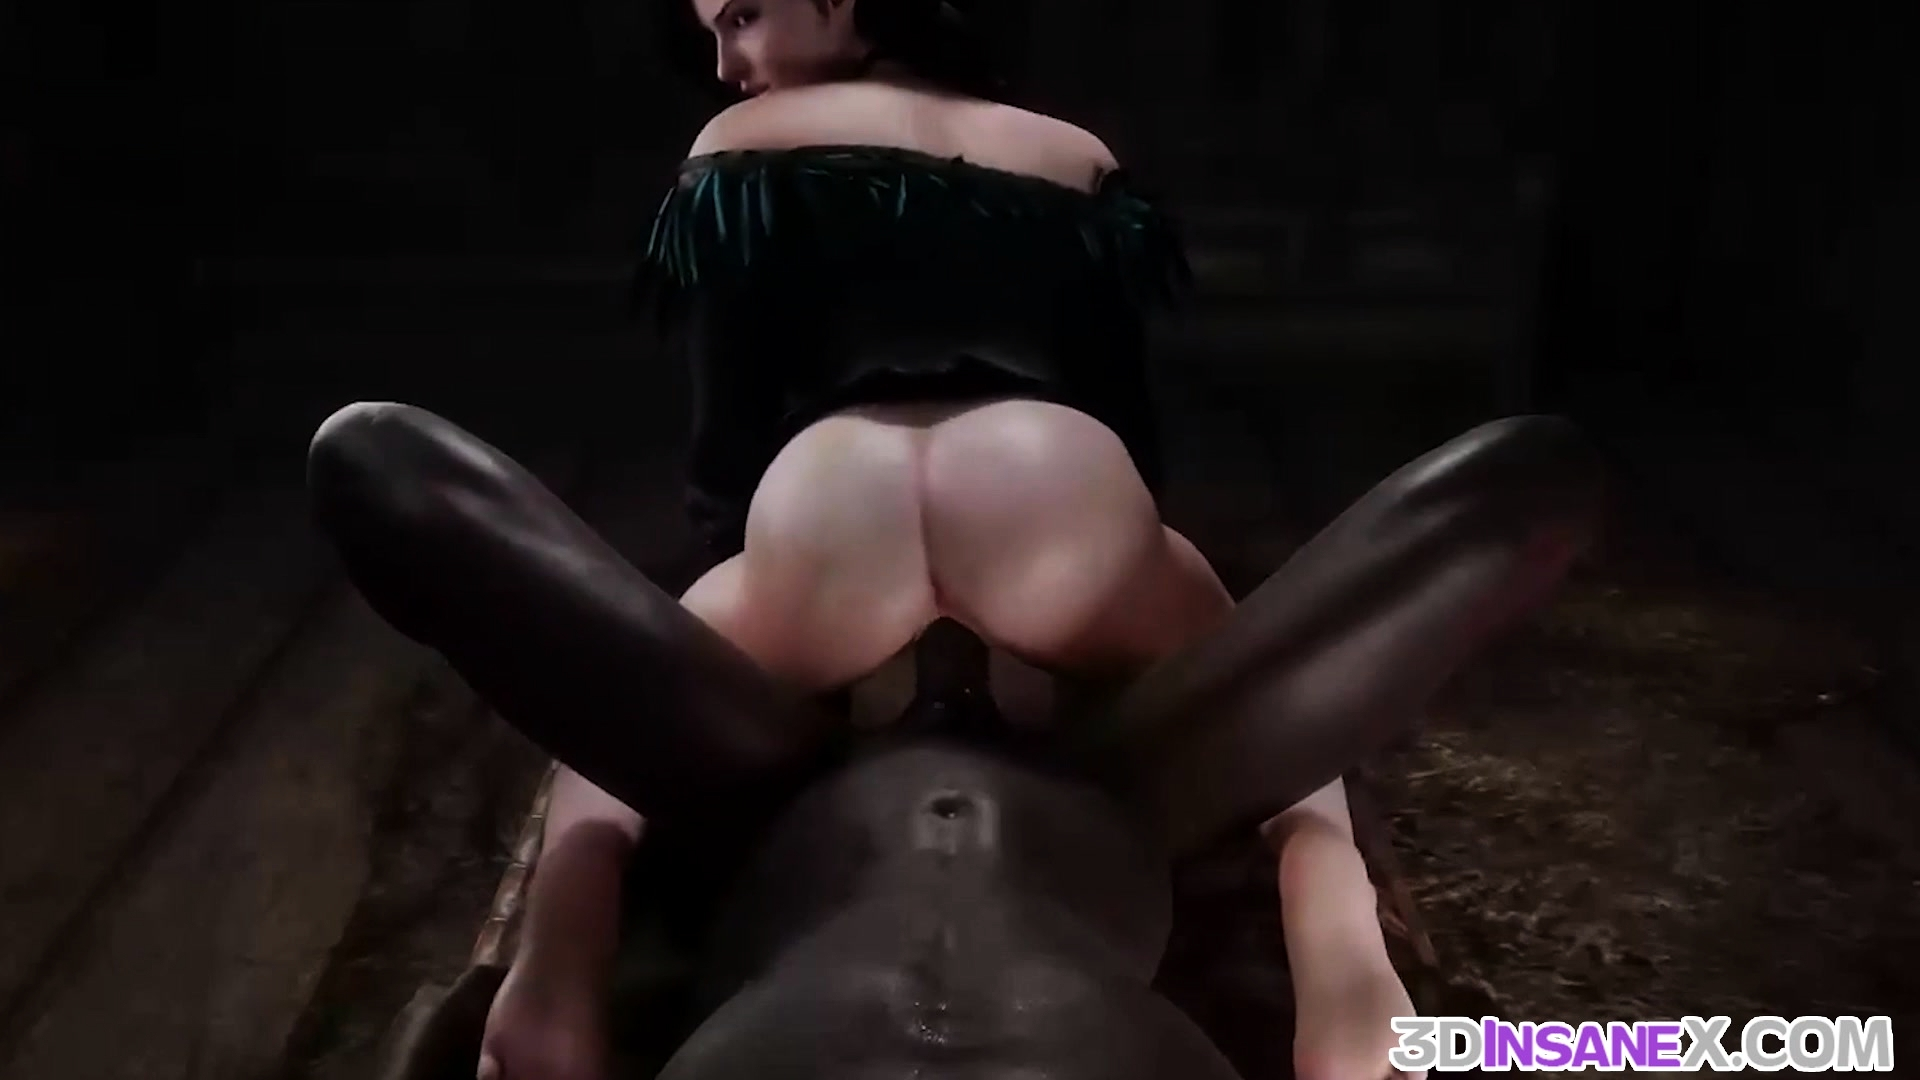 Ideal 3D brunette rammed by giant BBC